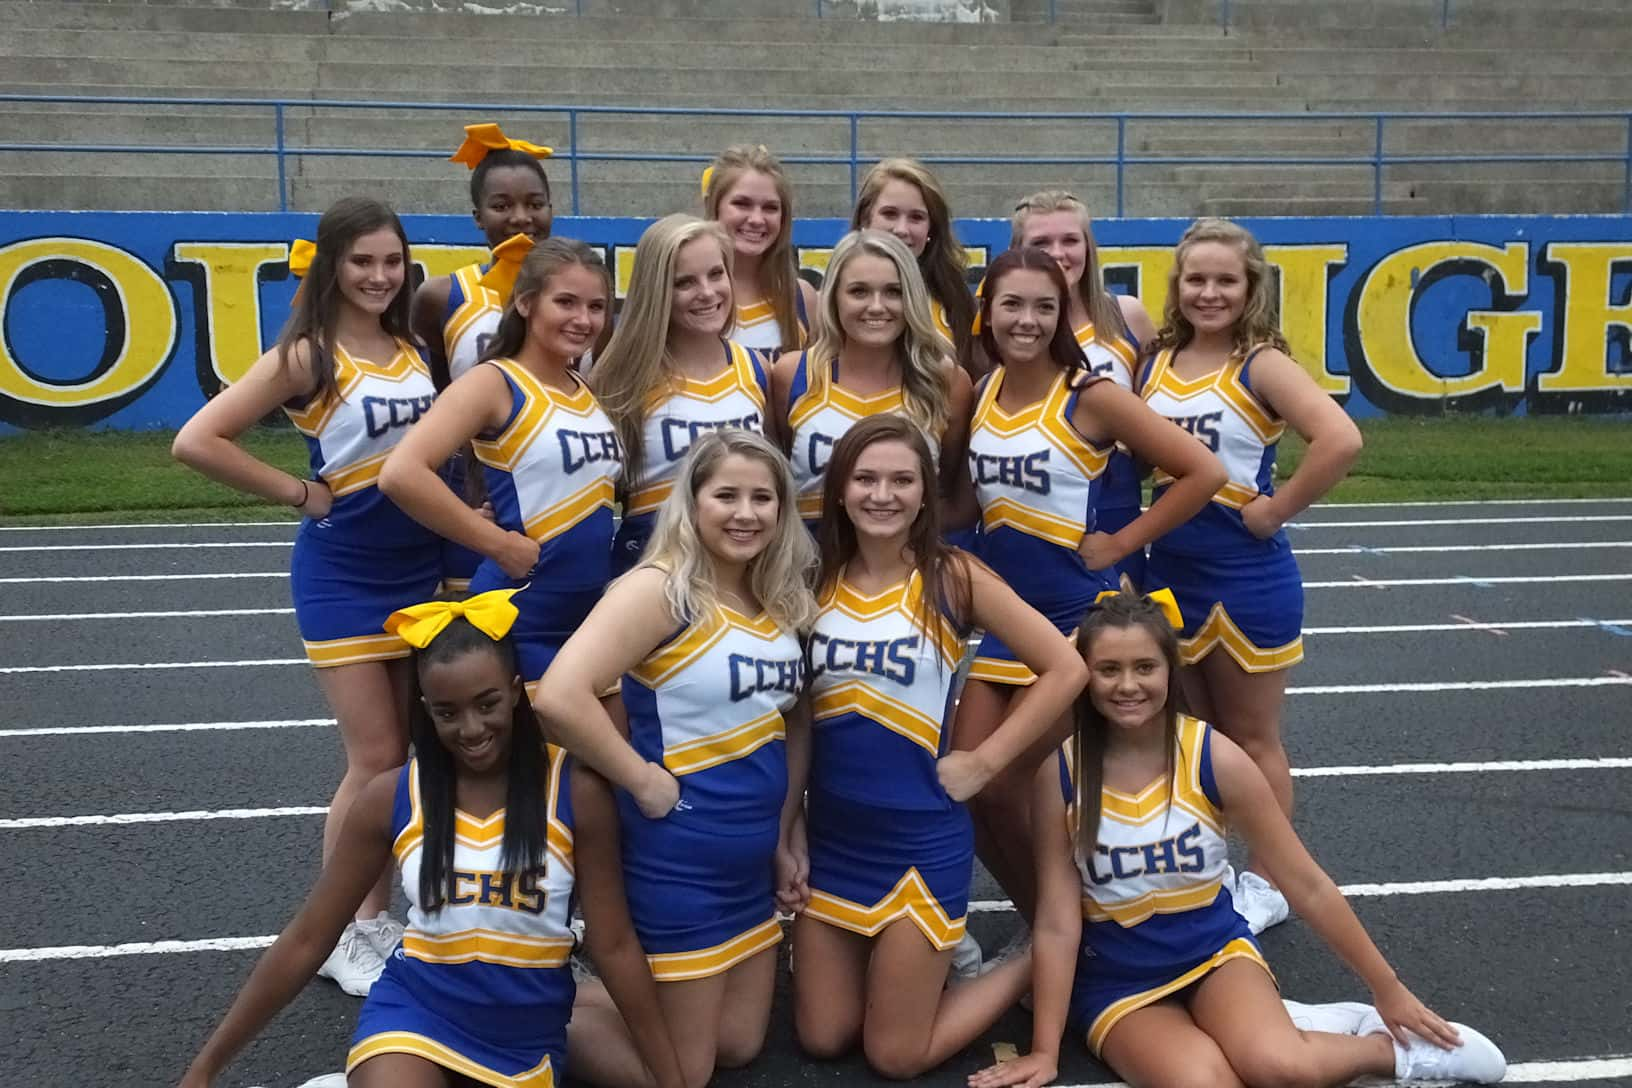 how many players on a cheerleading squad